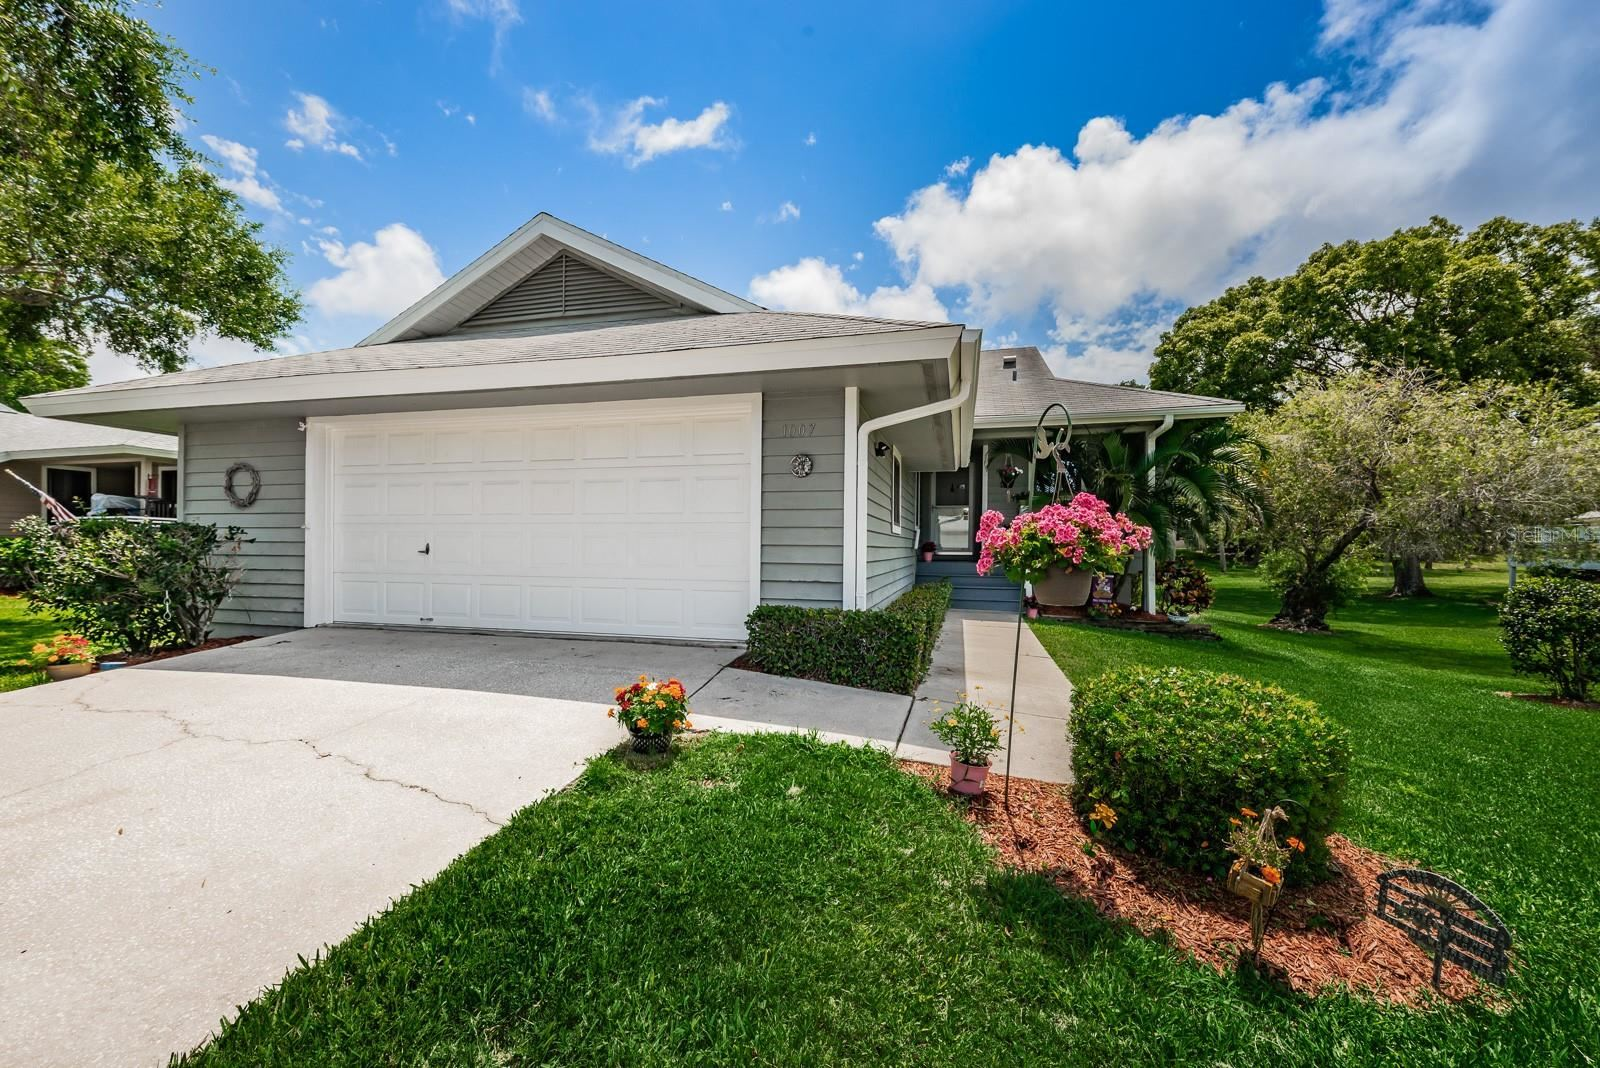 1007 LAKE AVOCA DRIVE, Tarpon Springs, FL 34689 - MLS#: U8122632